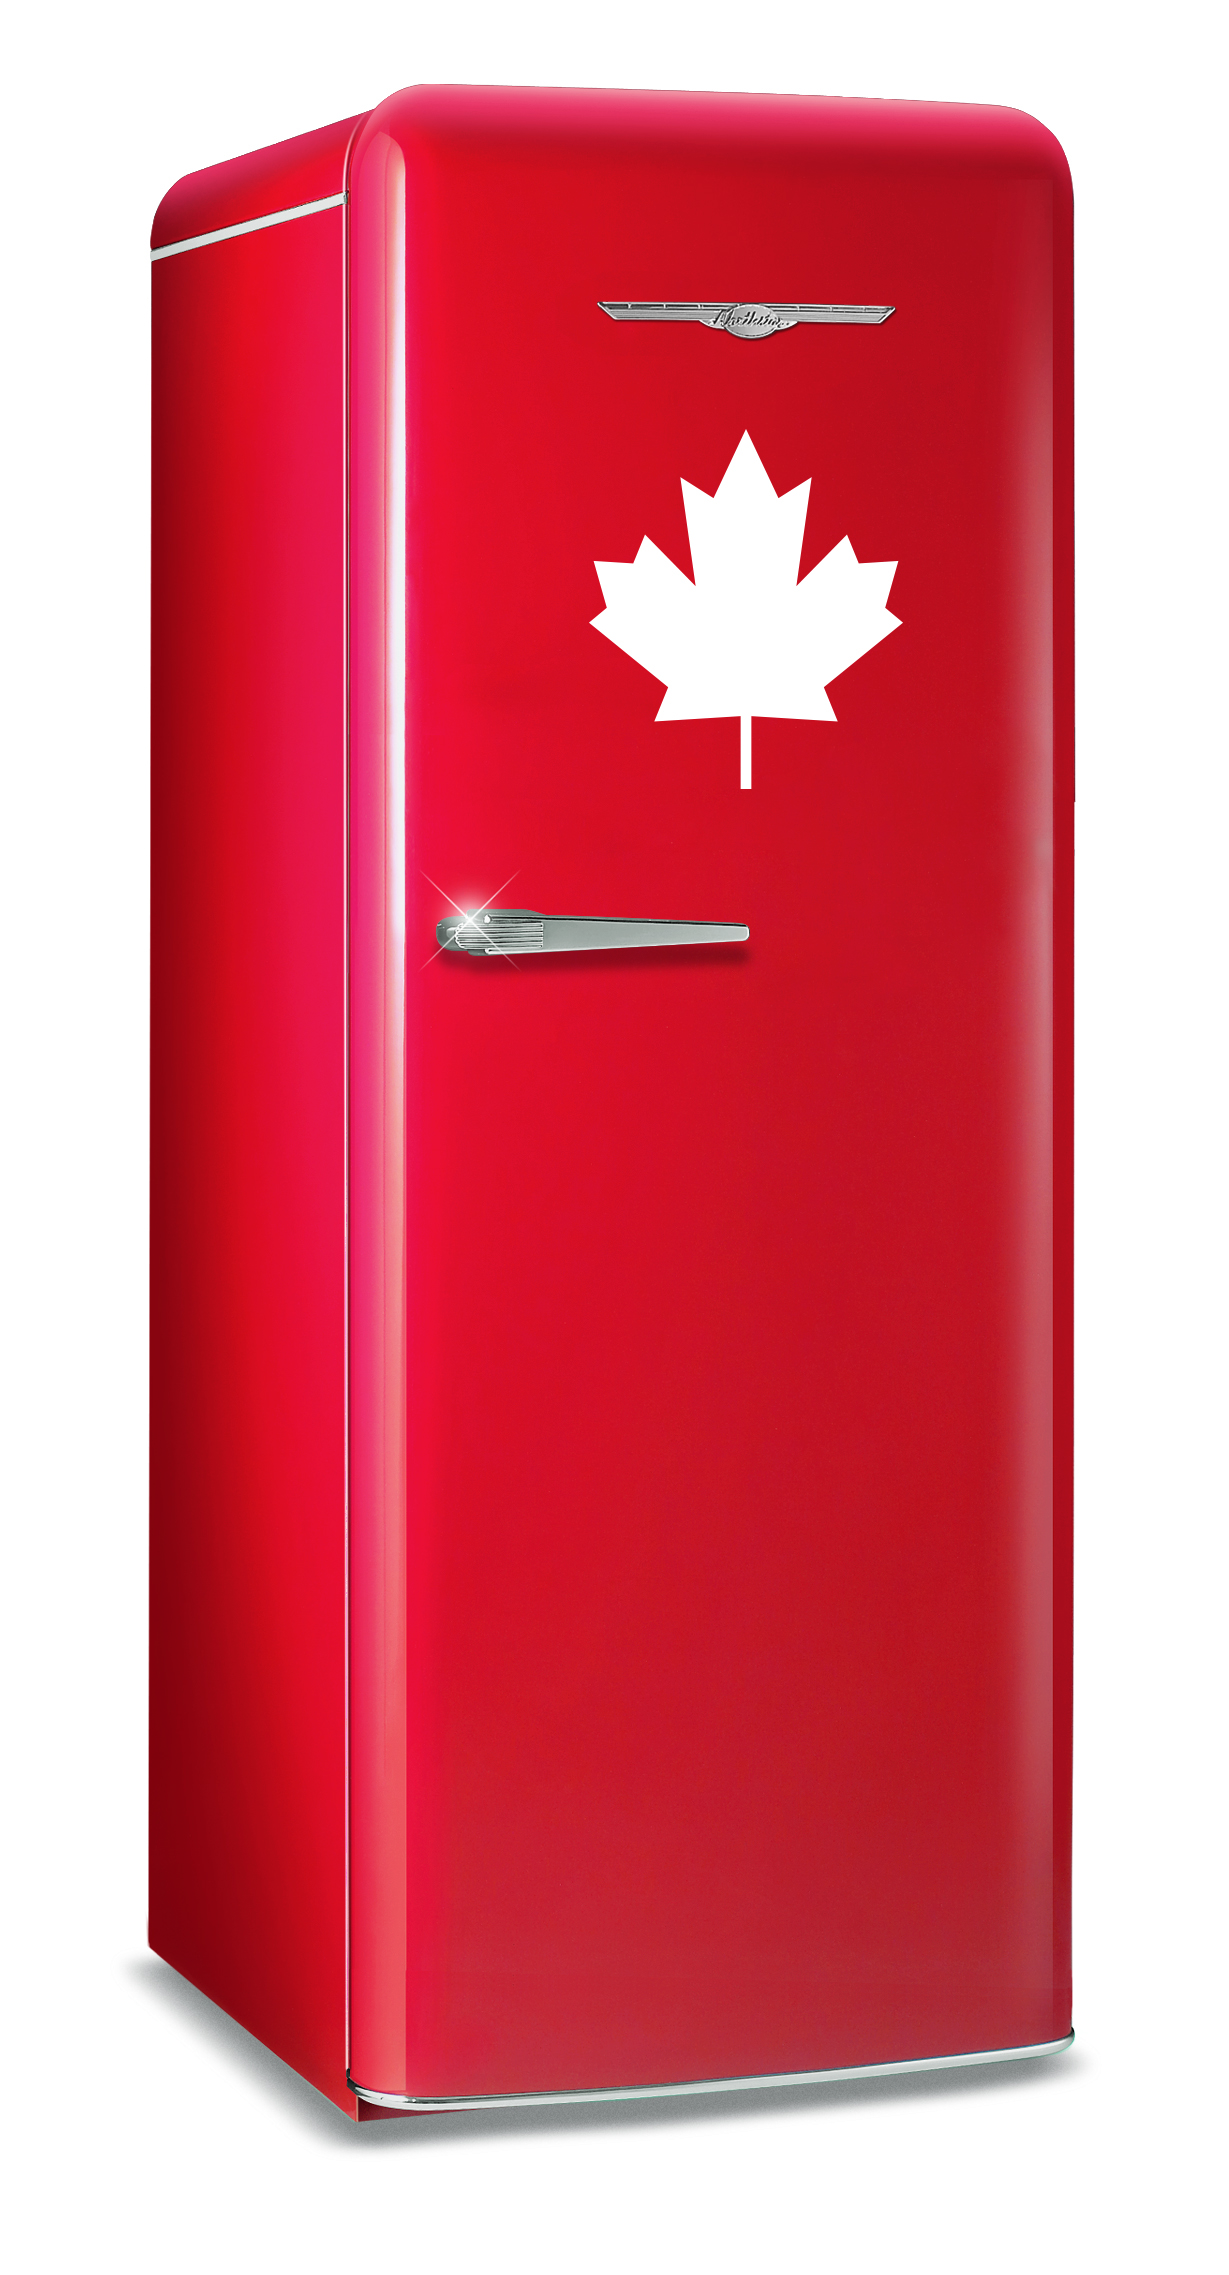 Fridges Canada Elmira S Northstar Beer Fridge Made For Canadians By Canadians